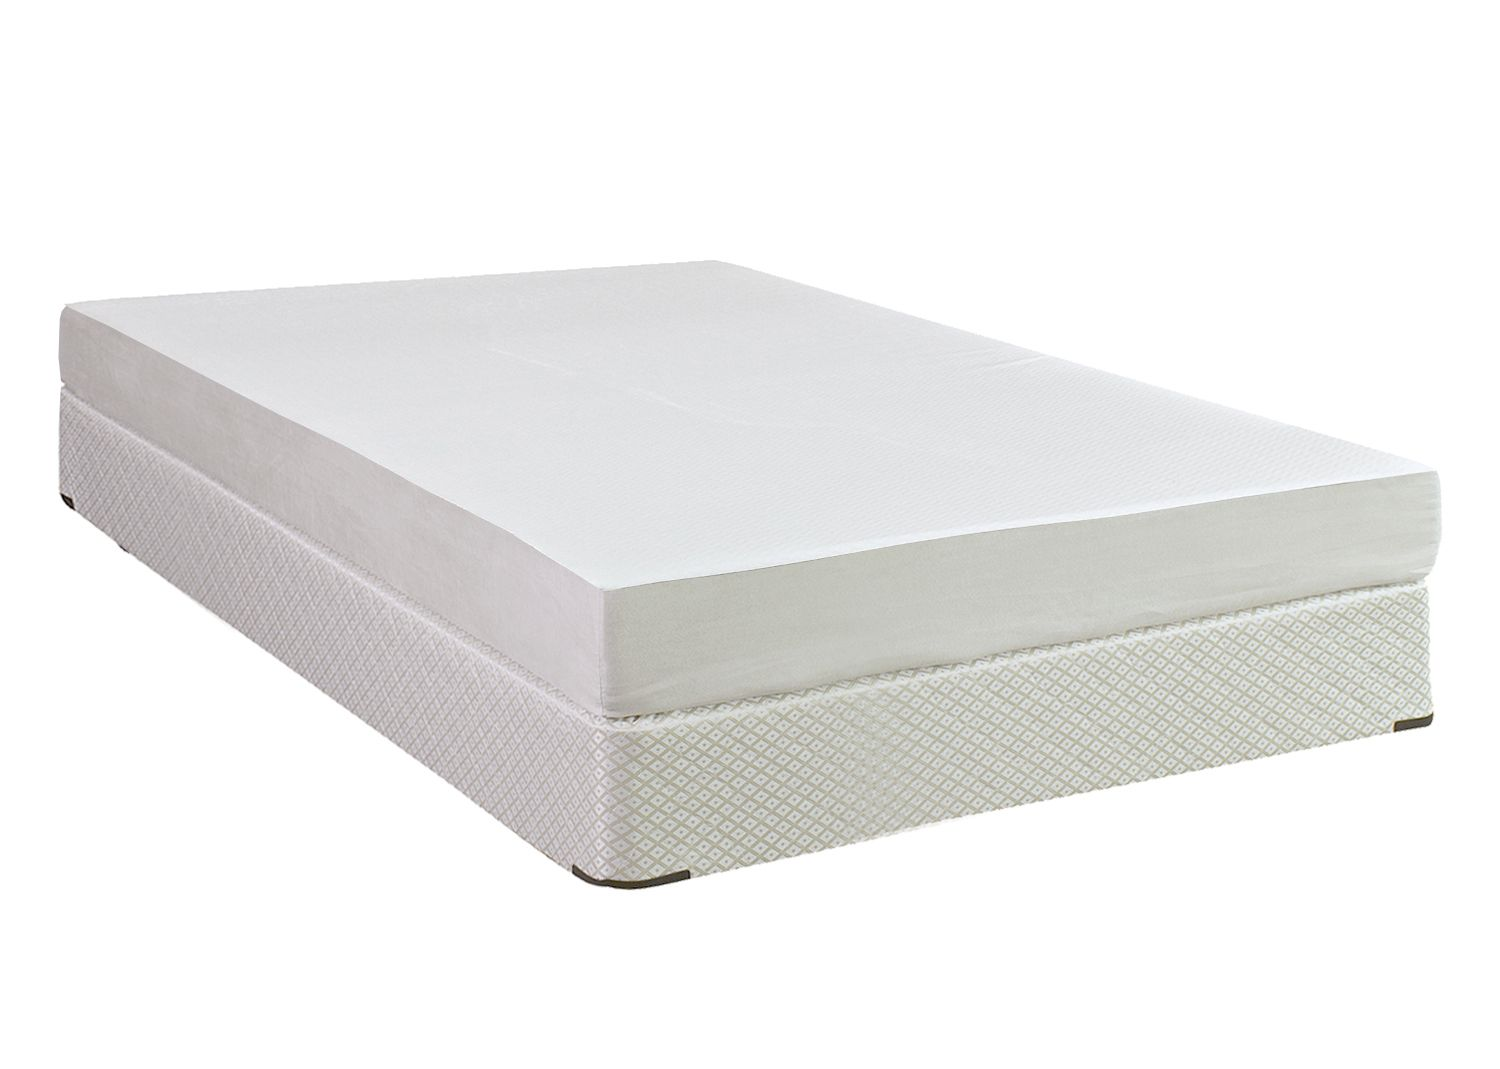 featuring all natural memory foam along with a layer of cool action